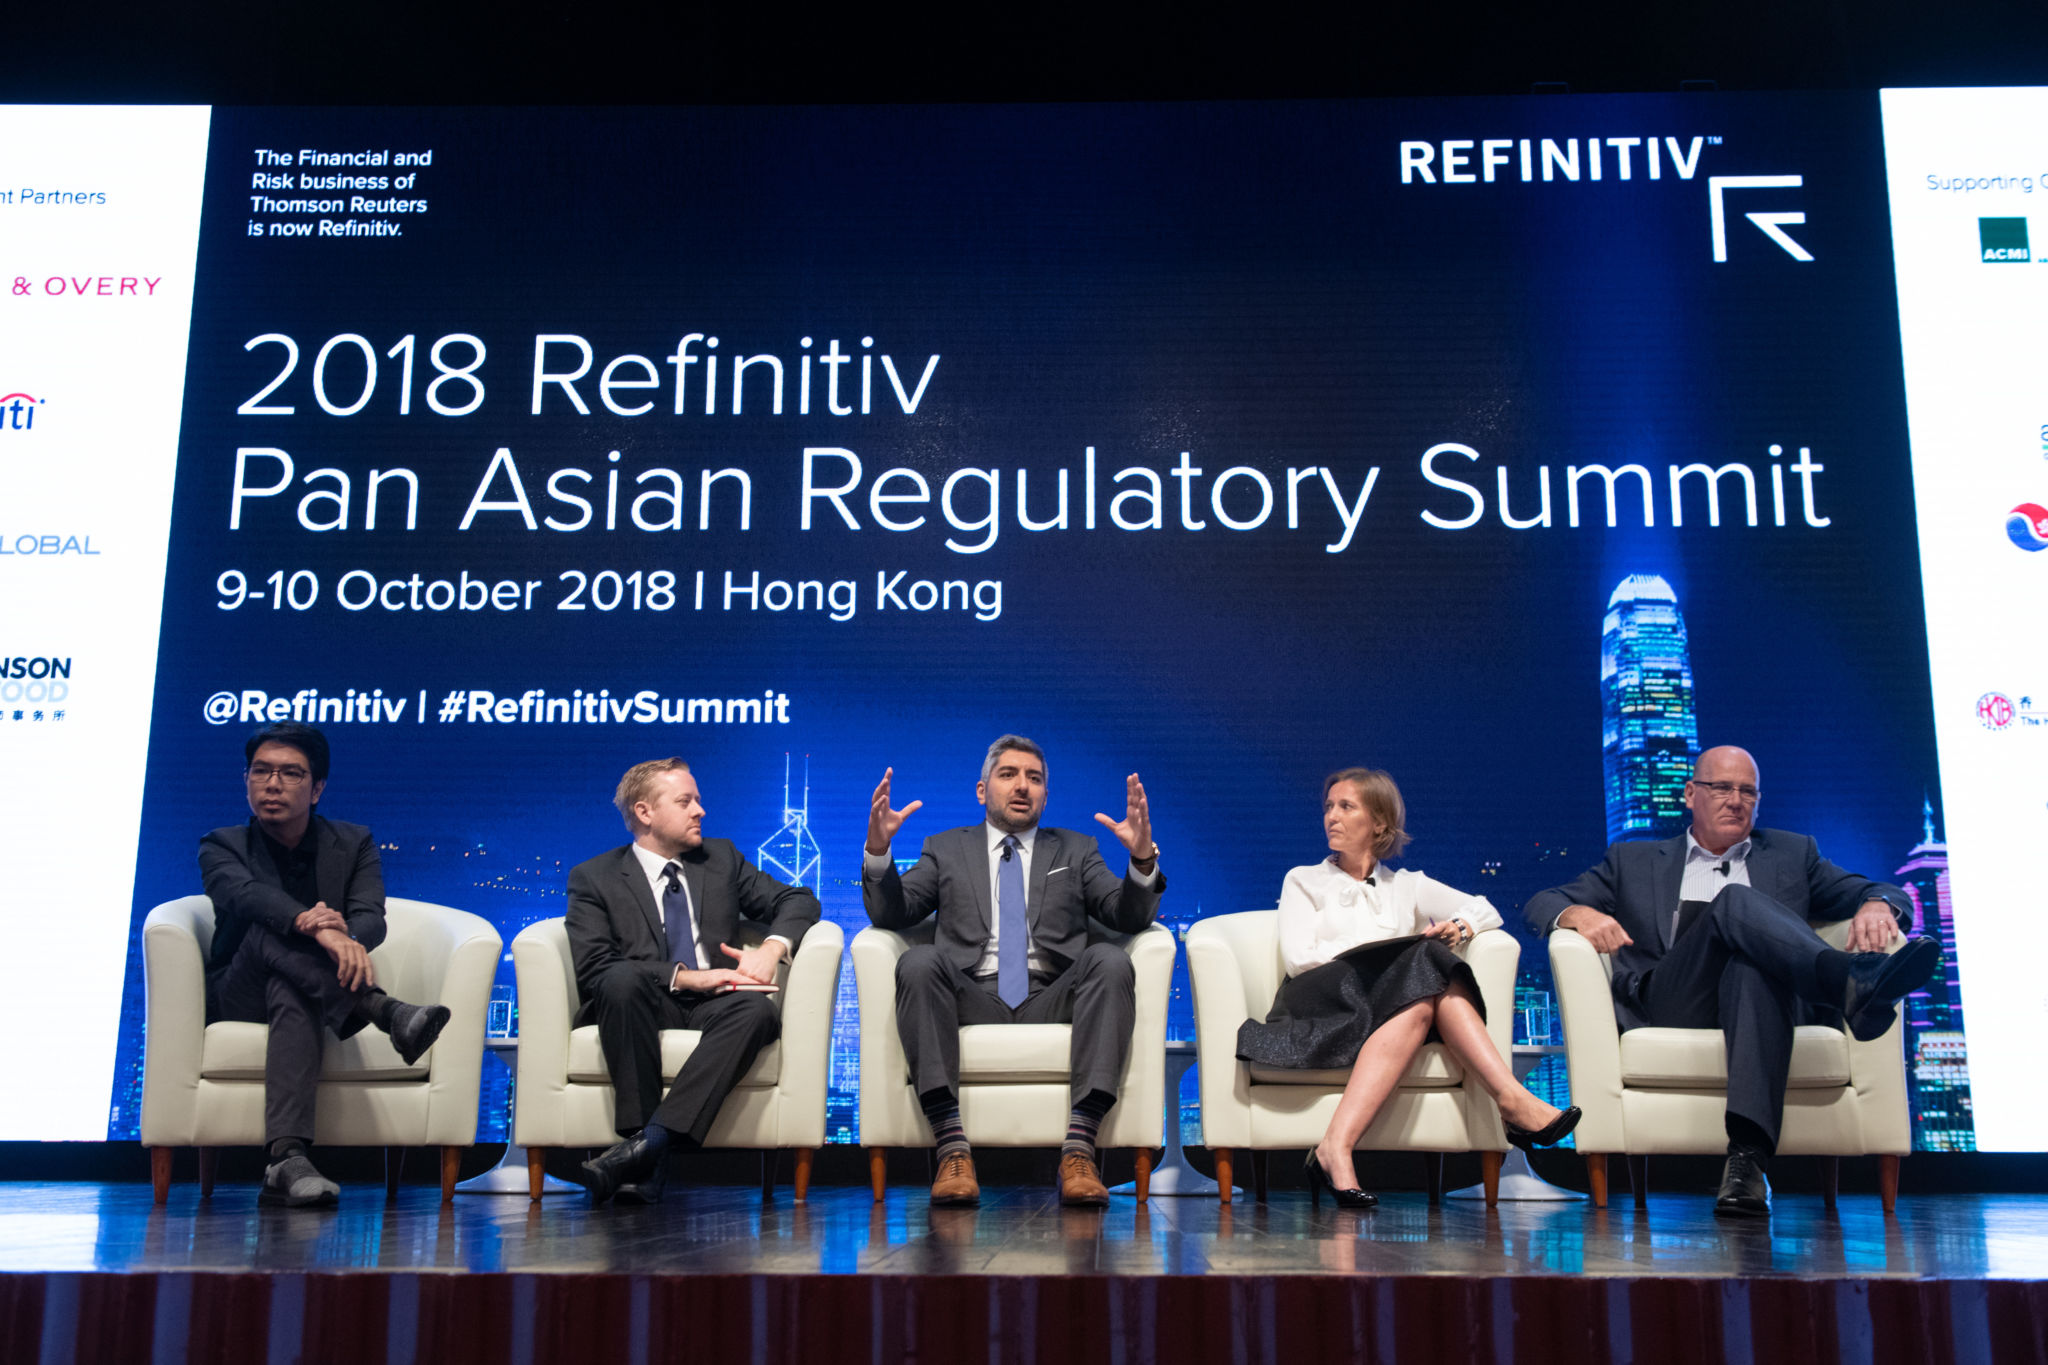 Panel discussion discussing the latest crypto regulatory and industry developments at the 2018 Refinitiv Pan Asian Regulatory Summit